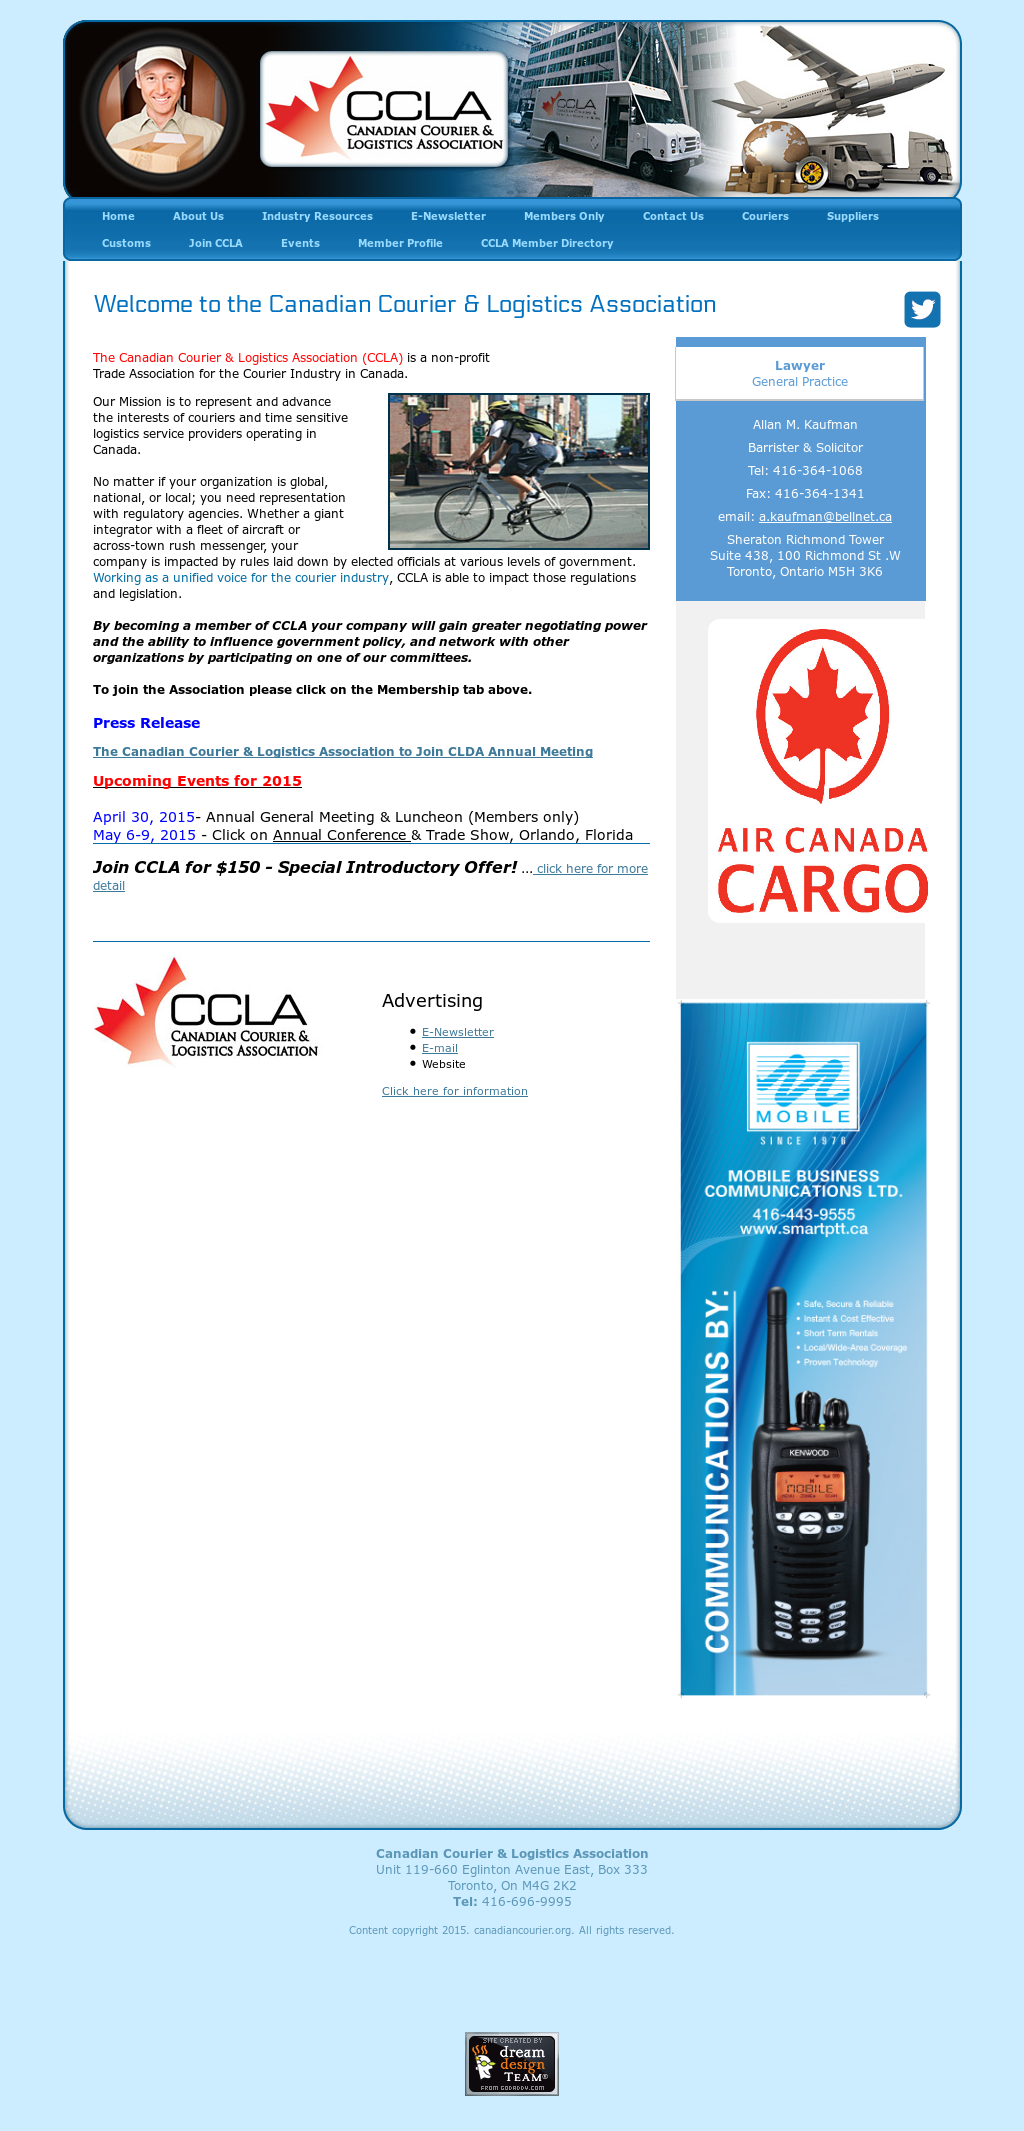 Canadian Courier & Logistics Association Competitors, Revenue and